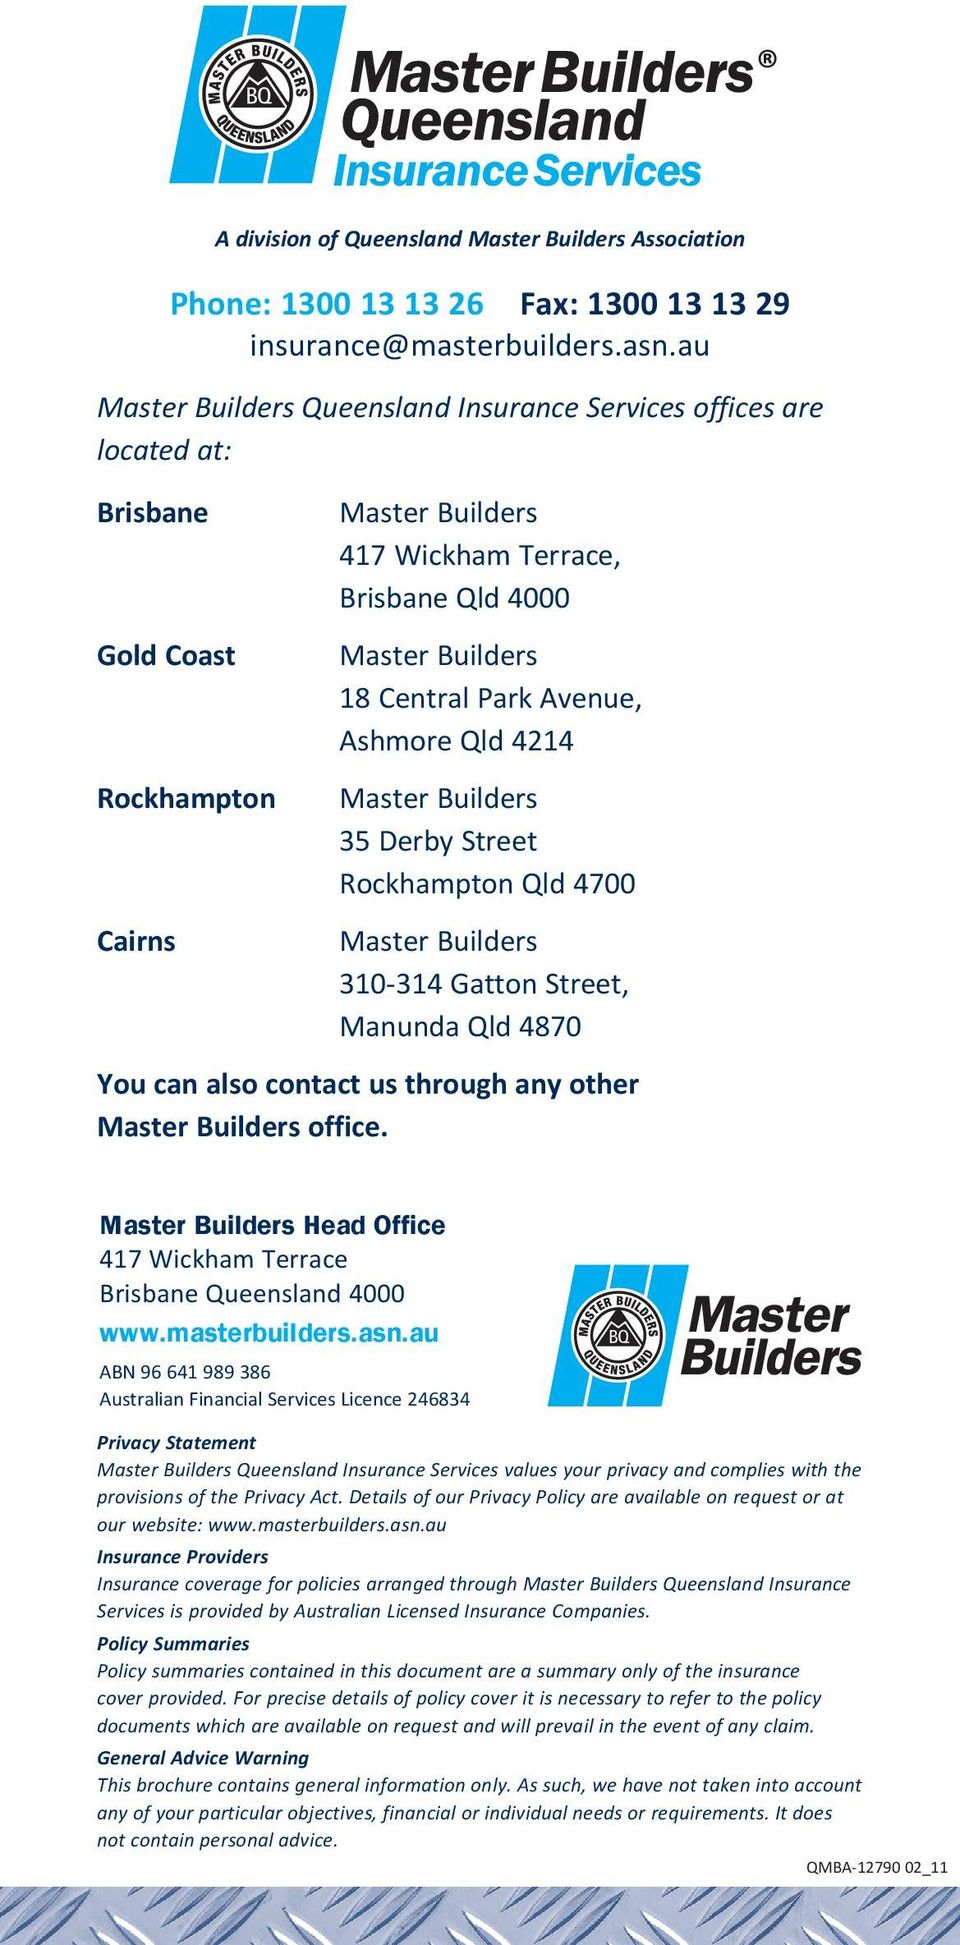 Rockhampton Qld 4700 310-314 Gatton Street, Manunda Qld 4870 You can also contact us through any other office. Head Office 417 Wickham Terrace Brisbane Queensland 4000 www.masterbuilders.asn.